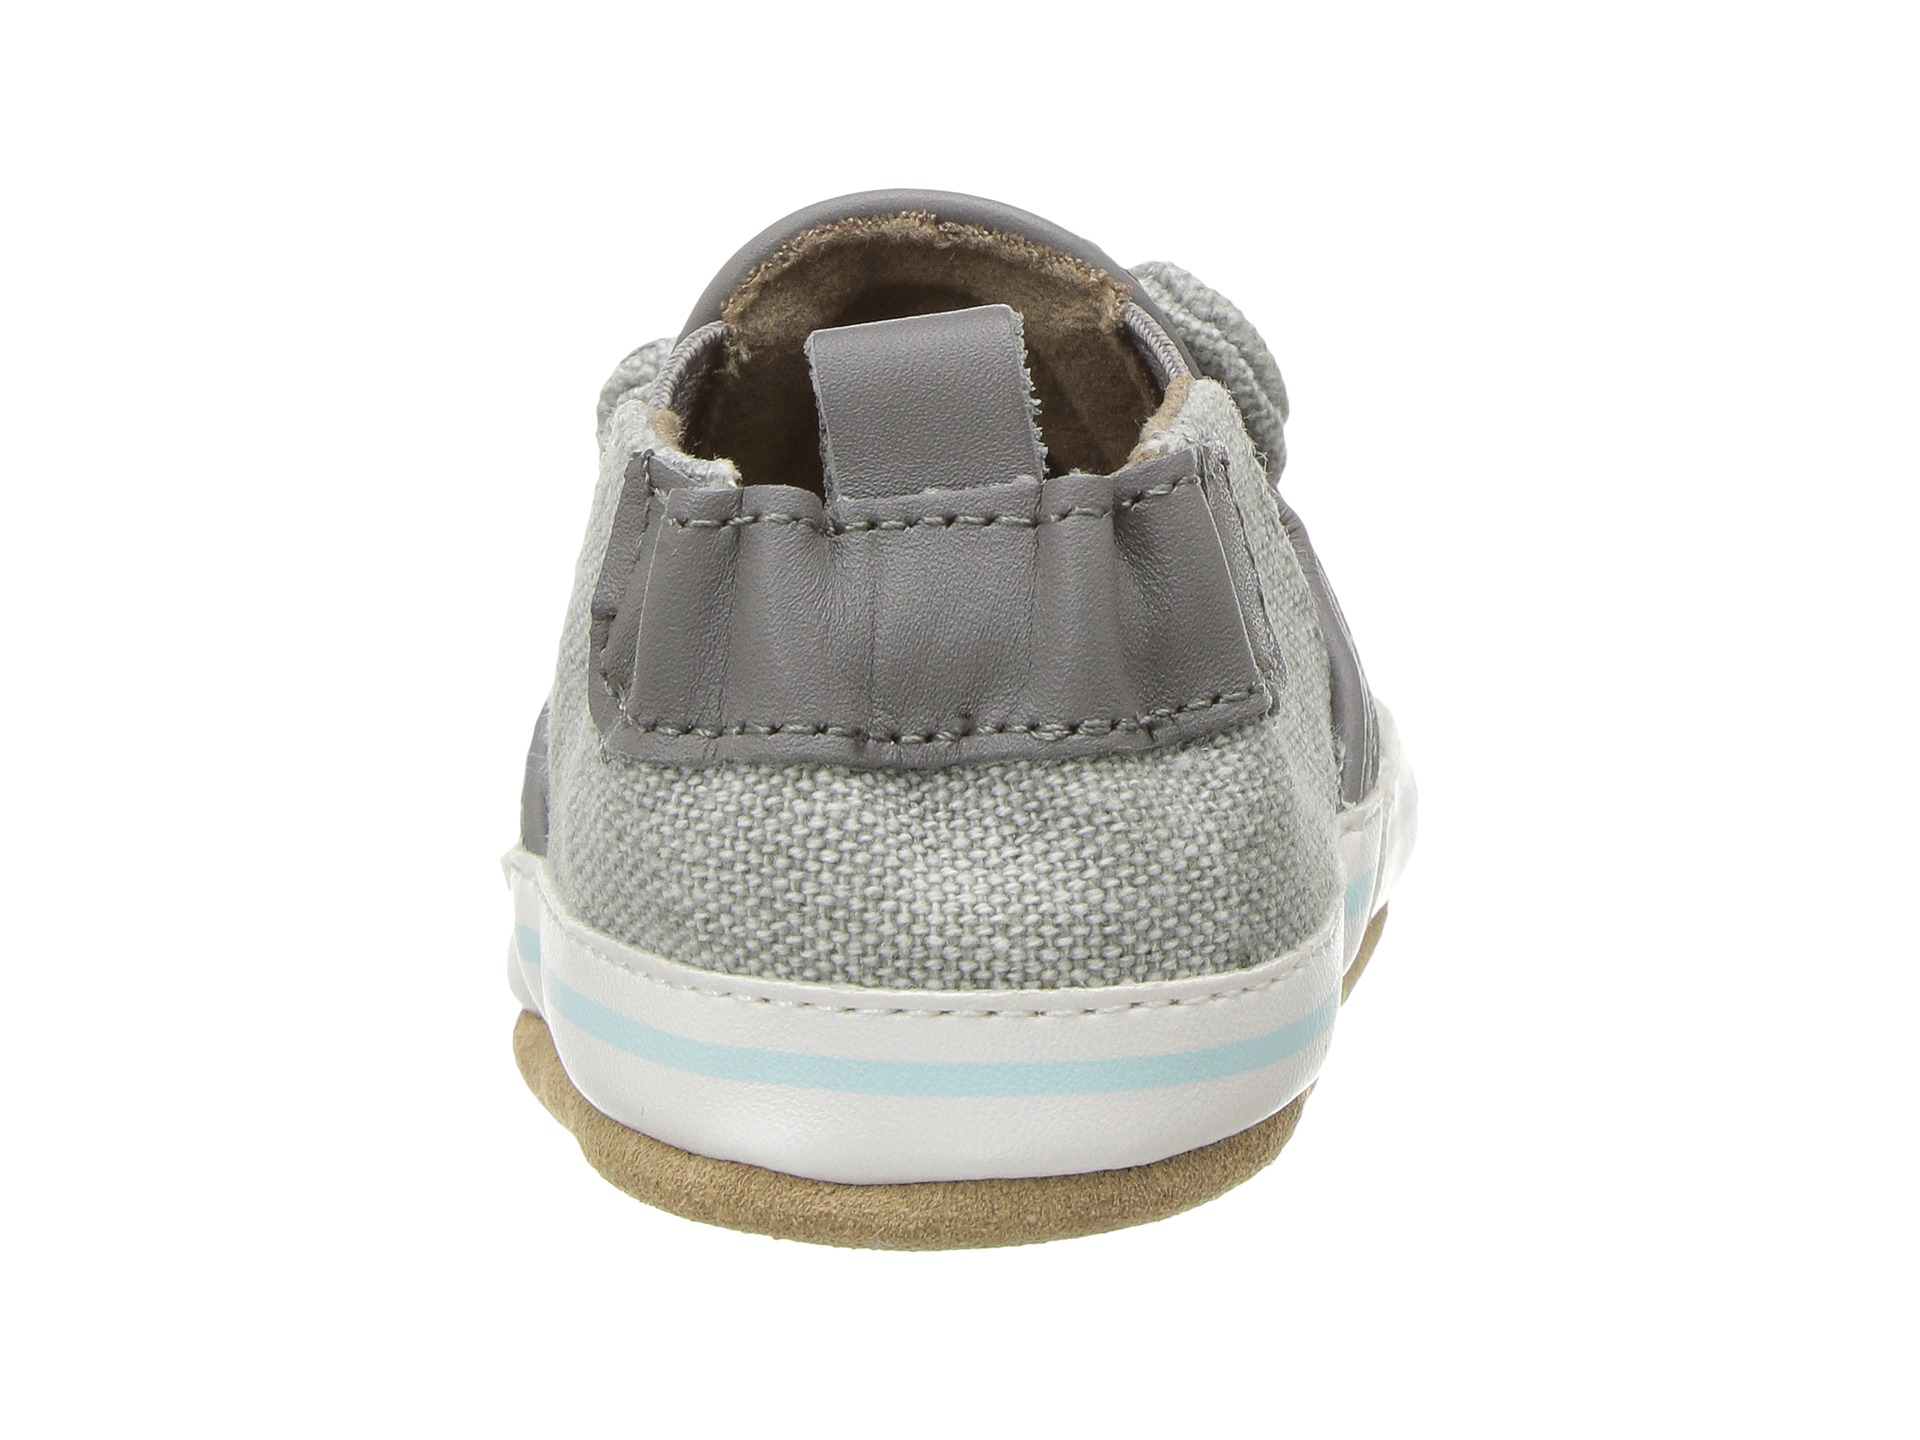 Robeez Shoes For Babies Reviews